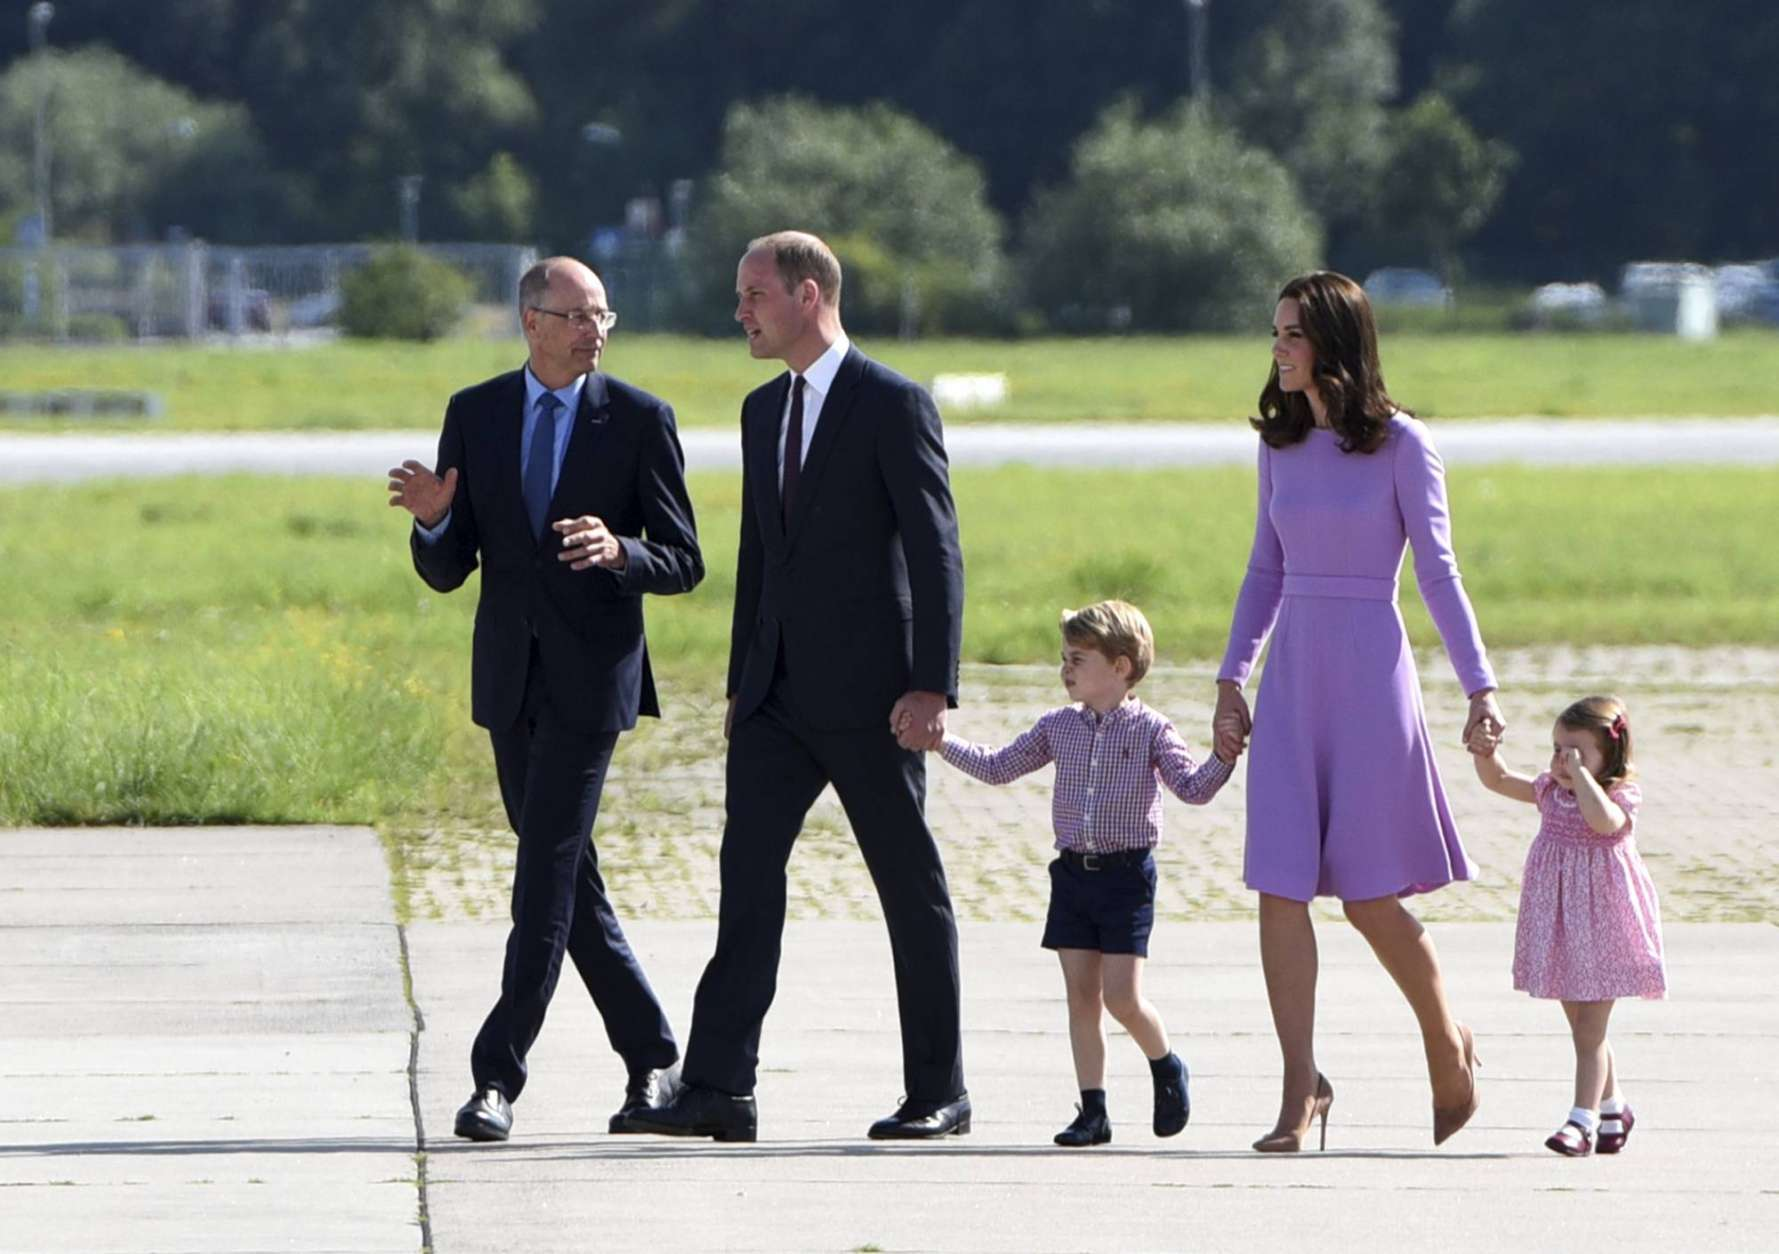 Britain's Prince William, second left, and his wife Kate, the Duchess of Cambridge, second right, together with their children, Prince George, center, and Princess Charlotte, right, visit the helicopter branch of Airbus in Hamburg, Friday, July 21, 2017. At left Wolfgang Schoder,  CEO Airbus Helicopters. (Daniel Bockwoldt/Pool Photo via AP)